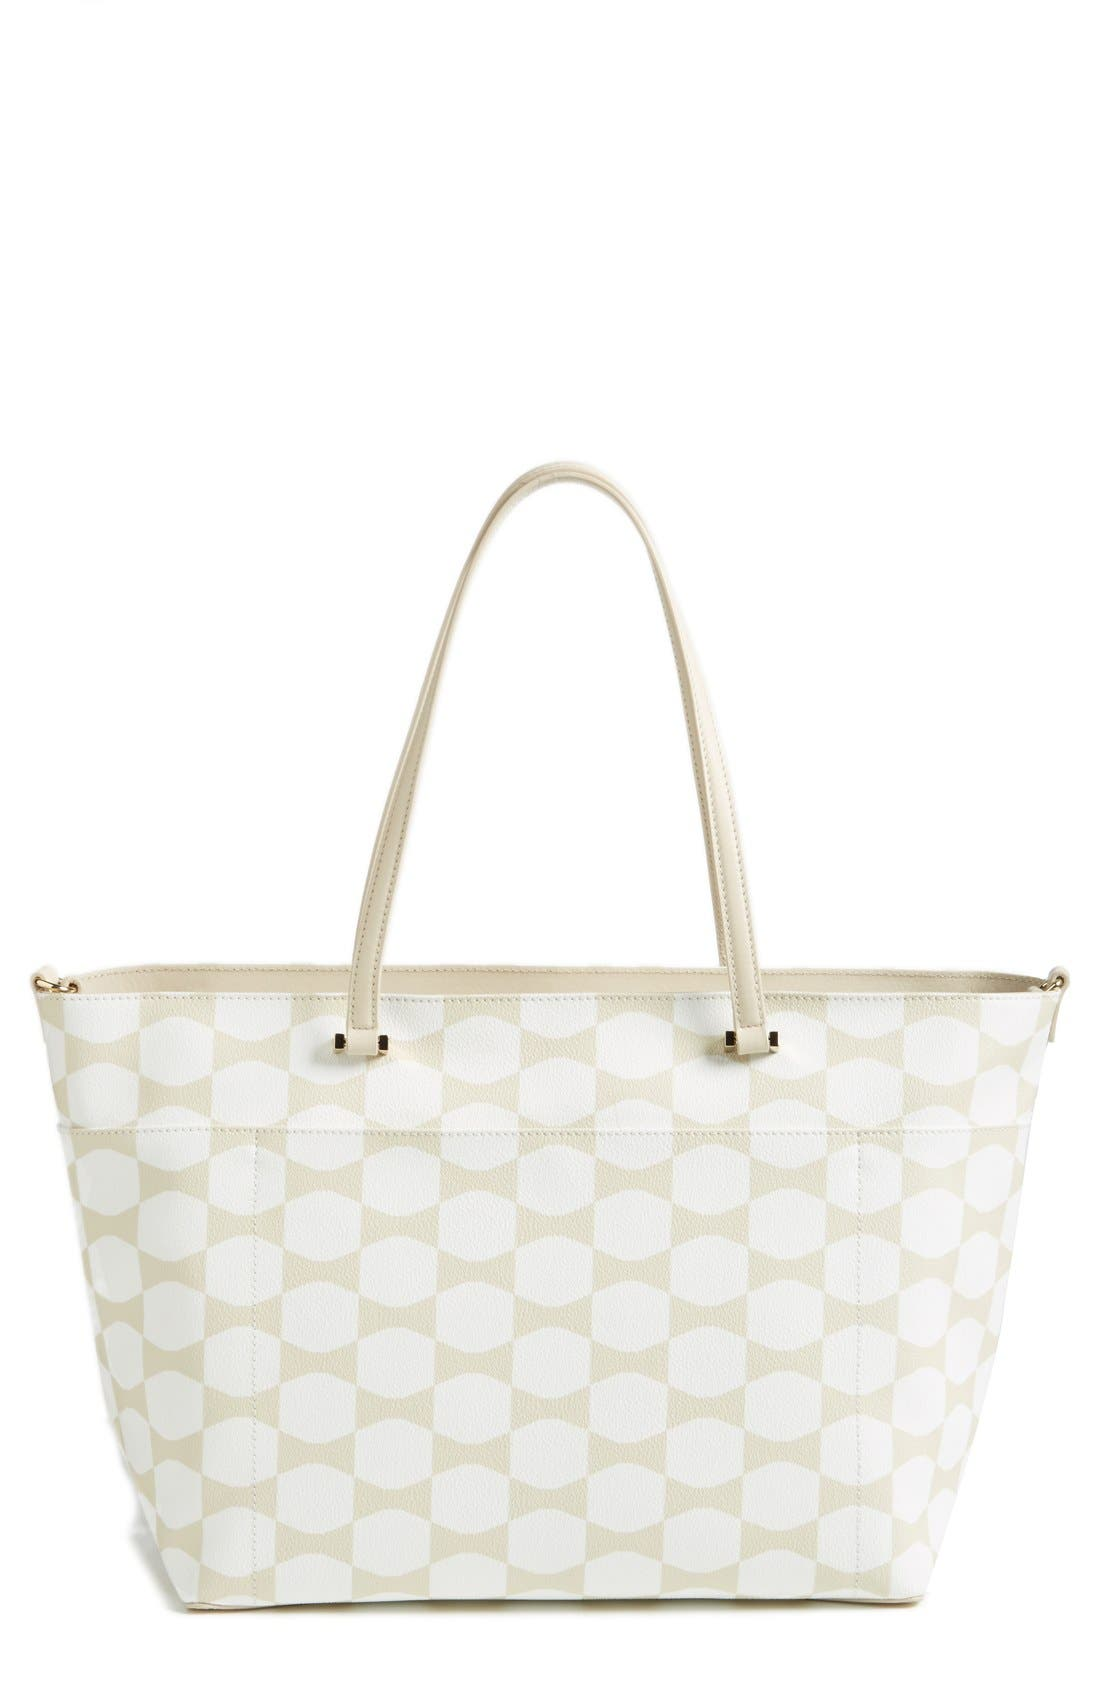 'bow tile - francis' baby bag,                             Alternate thumbnail 4, color,                             Cream/ Sandy Beach Multi